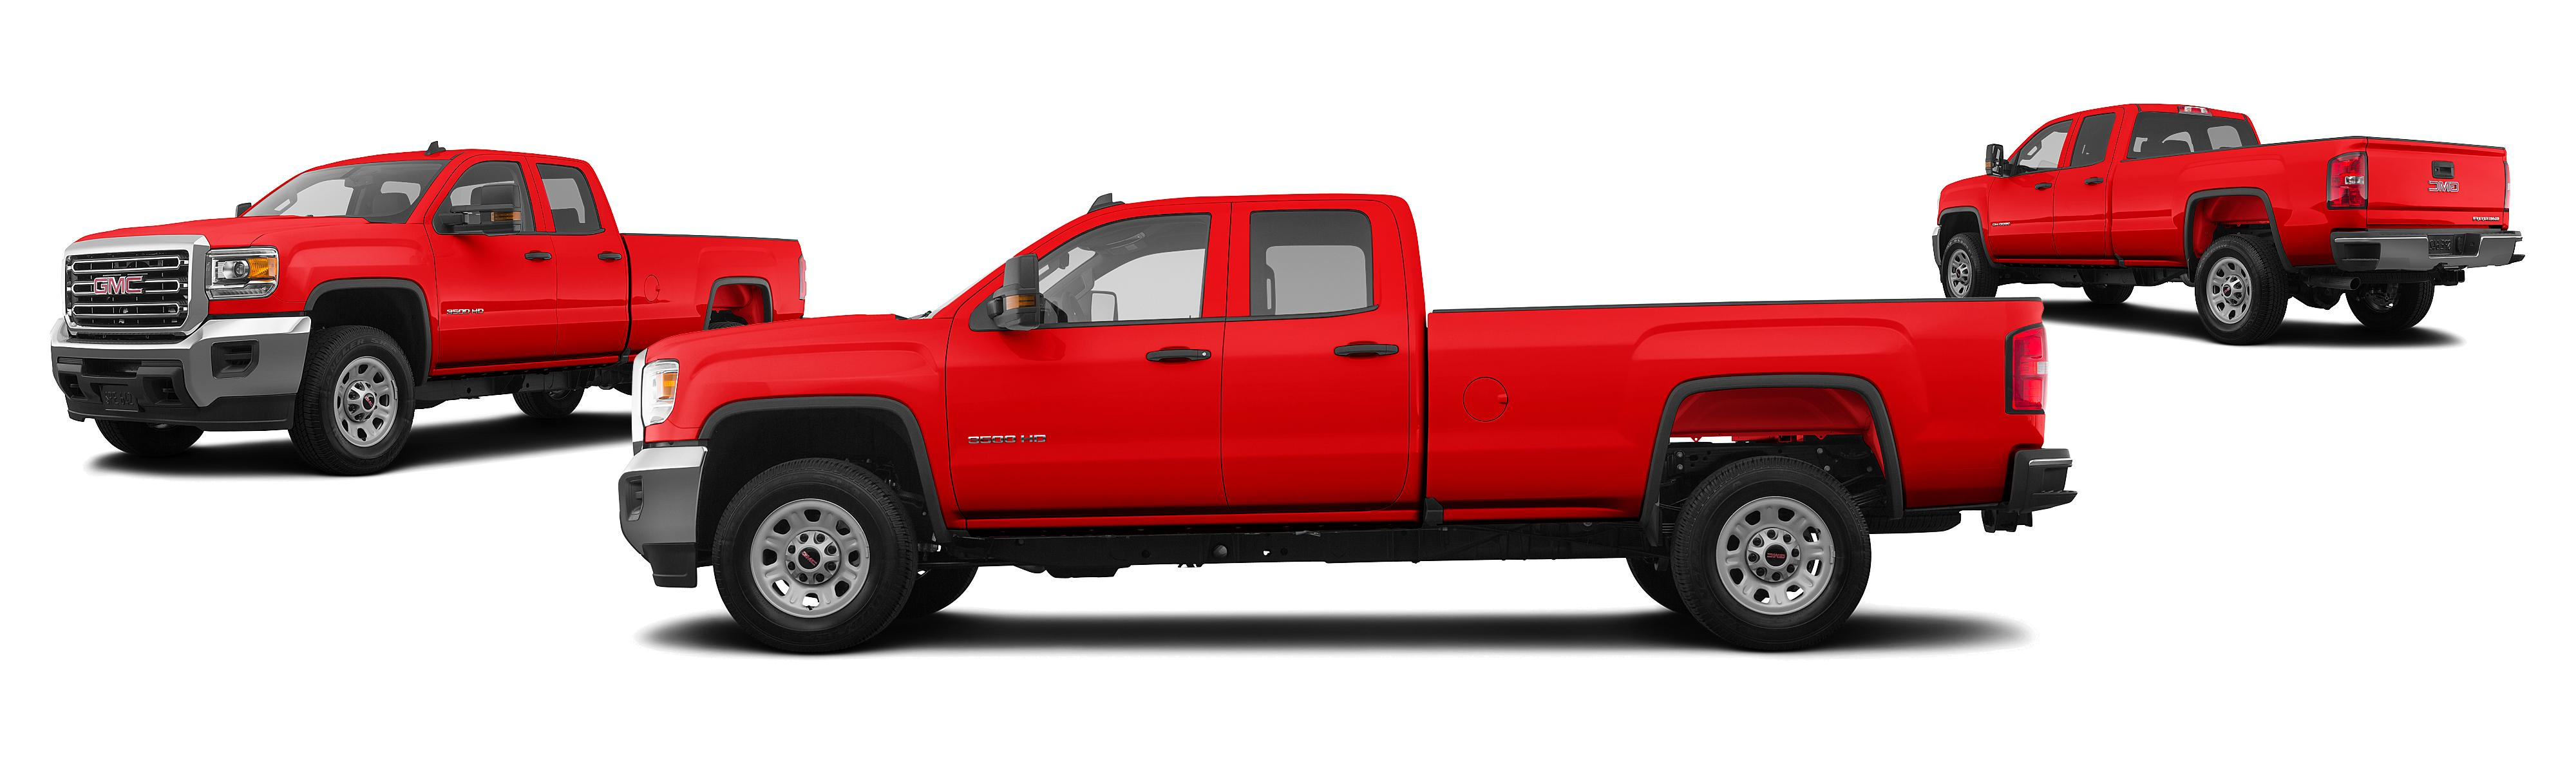 comfortable detail media news content us sierra gmc en capable smart and terrain all hd pages new sep